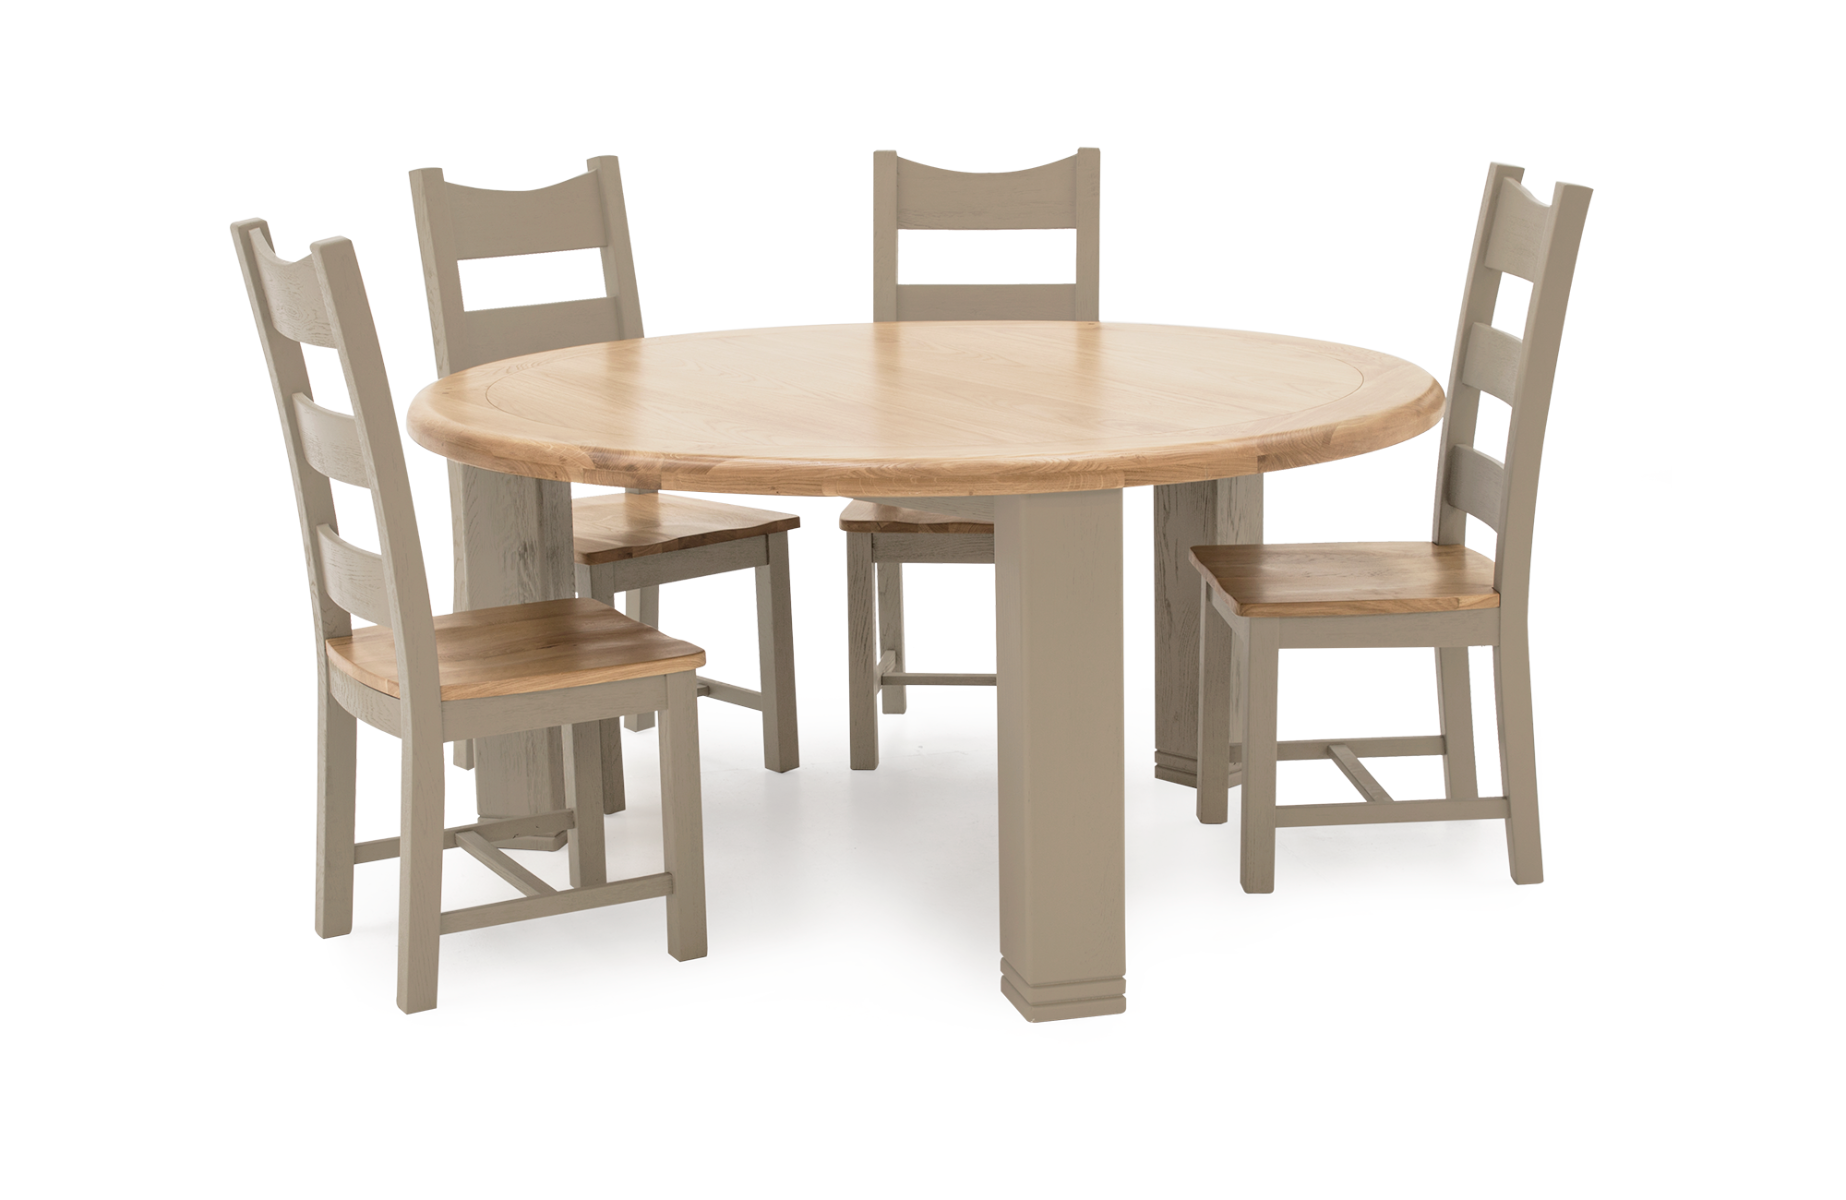 Logan 156cm Round Oak Dining Table with 4 Ladder Back Dining Chairs